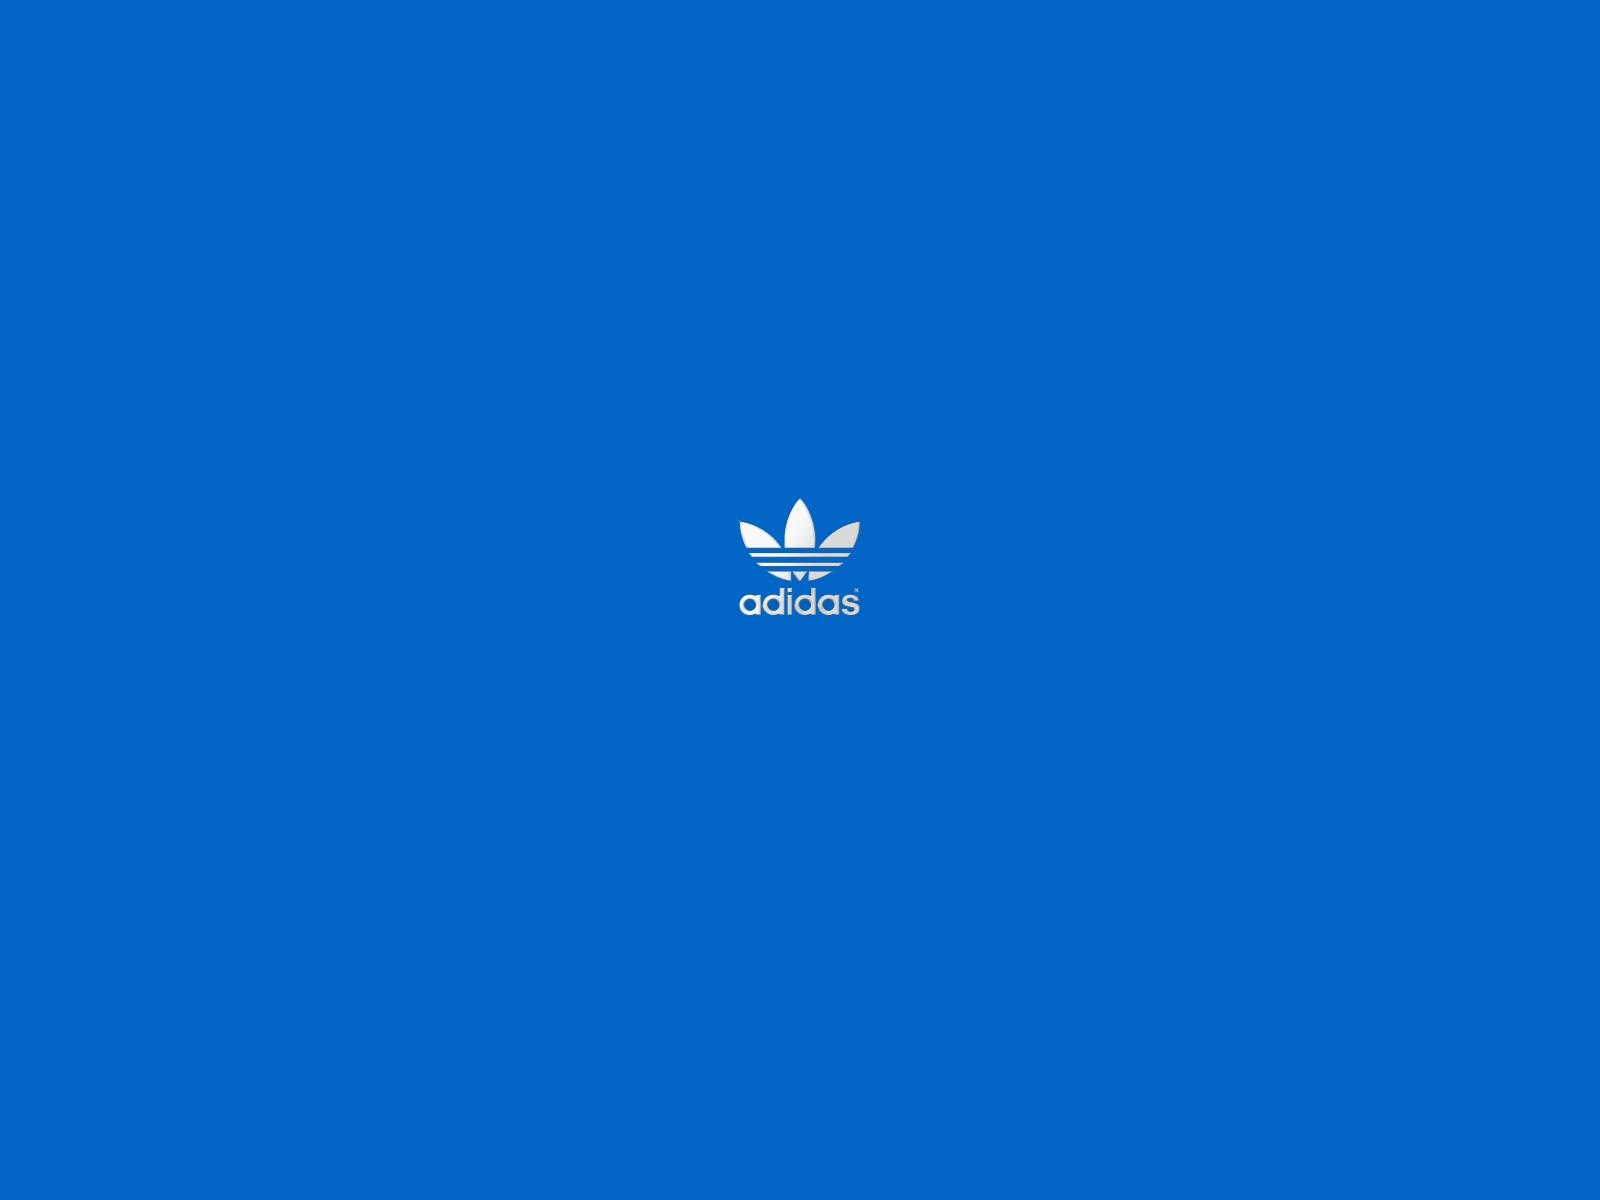 adidas blue wallpaper 1600x1200 27555